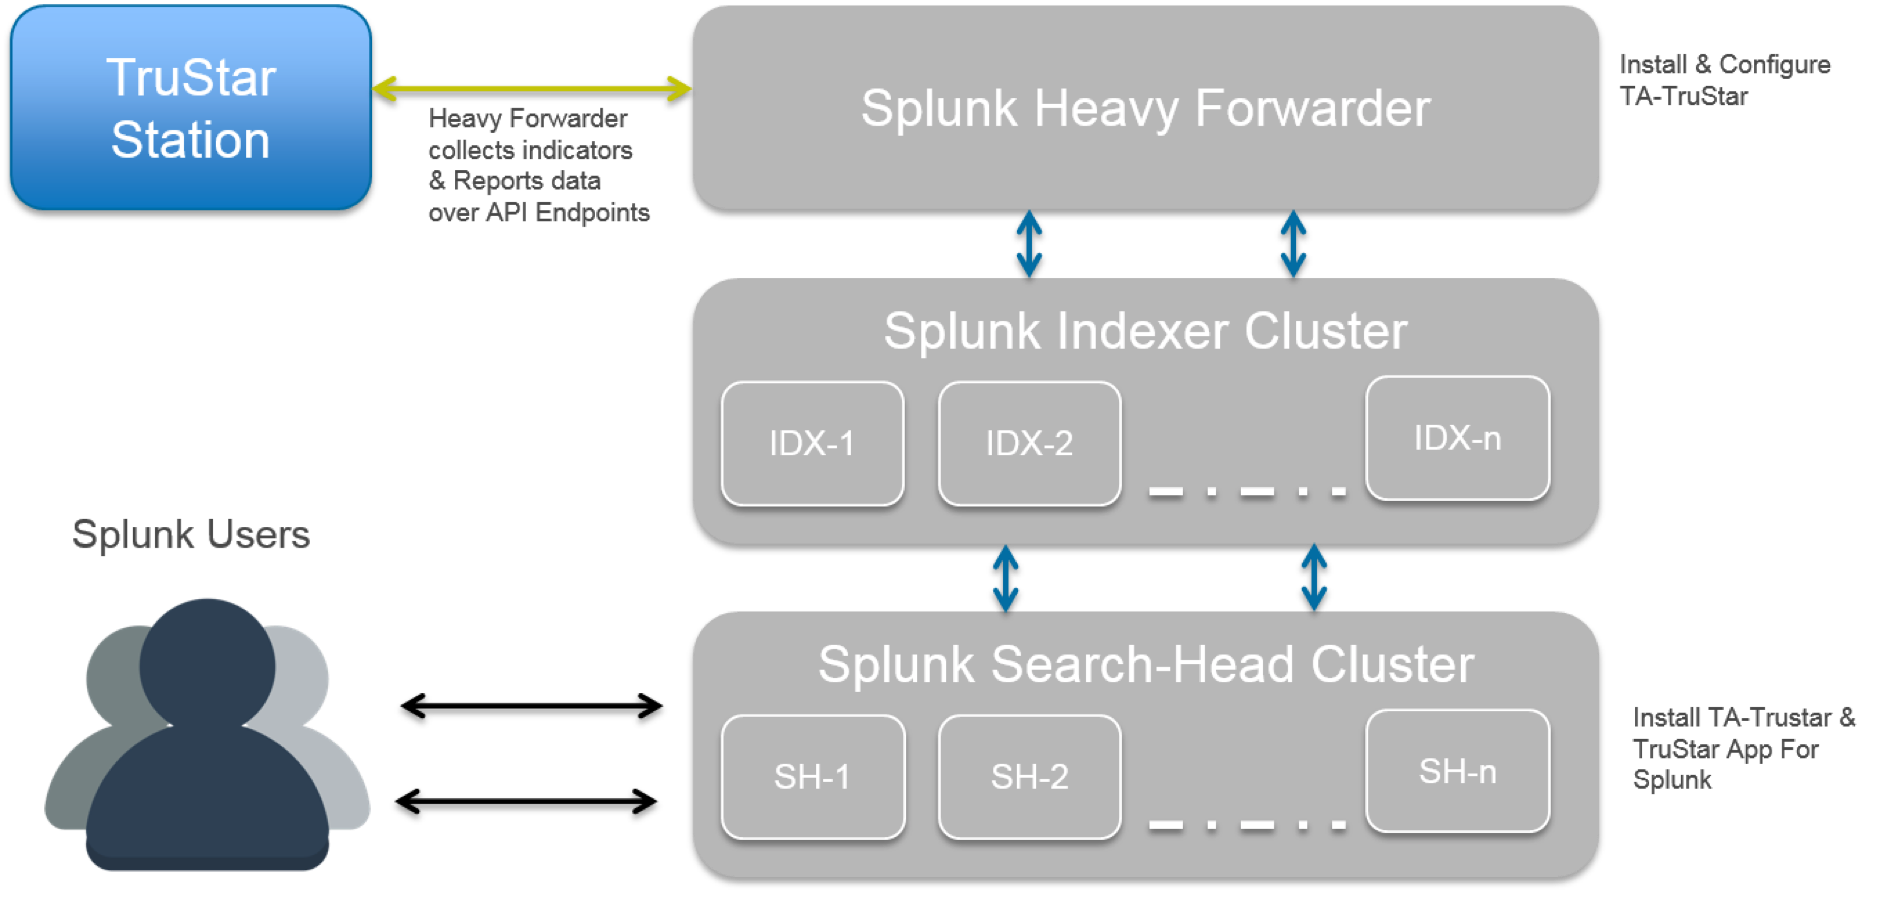 Splunk App 1 0 9 & Technology Add-On 1 0 9 - TruSTAR Knowledge Base